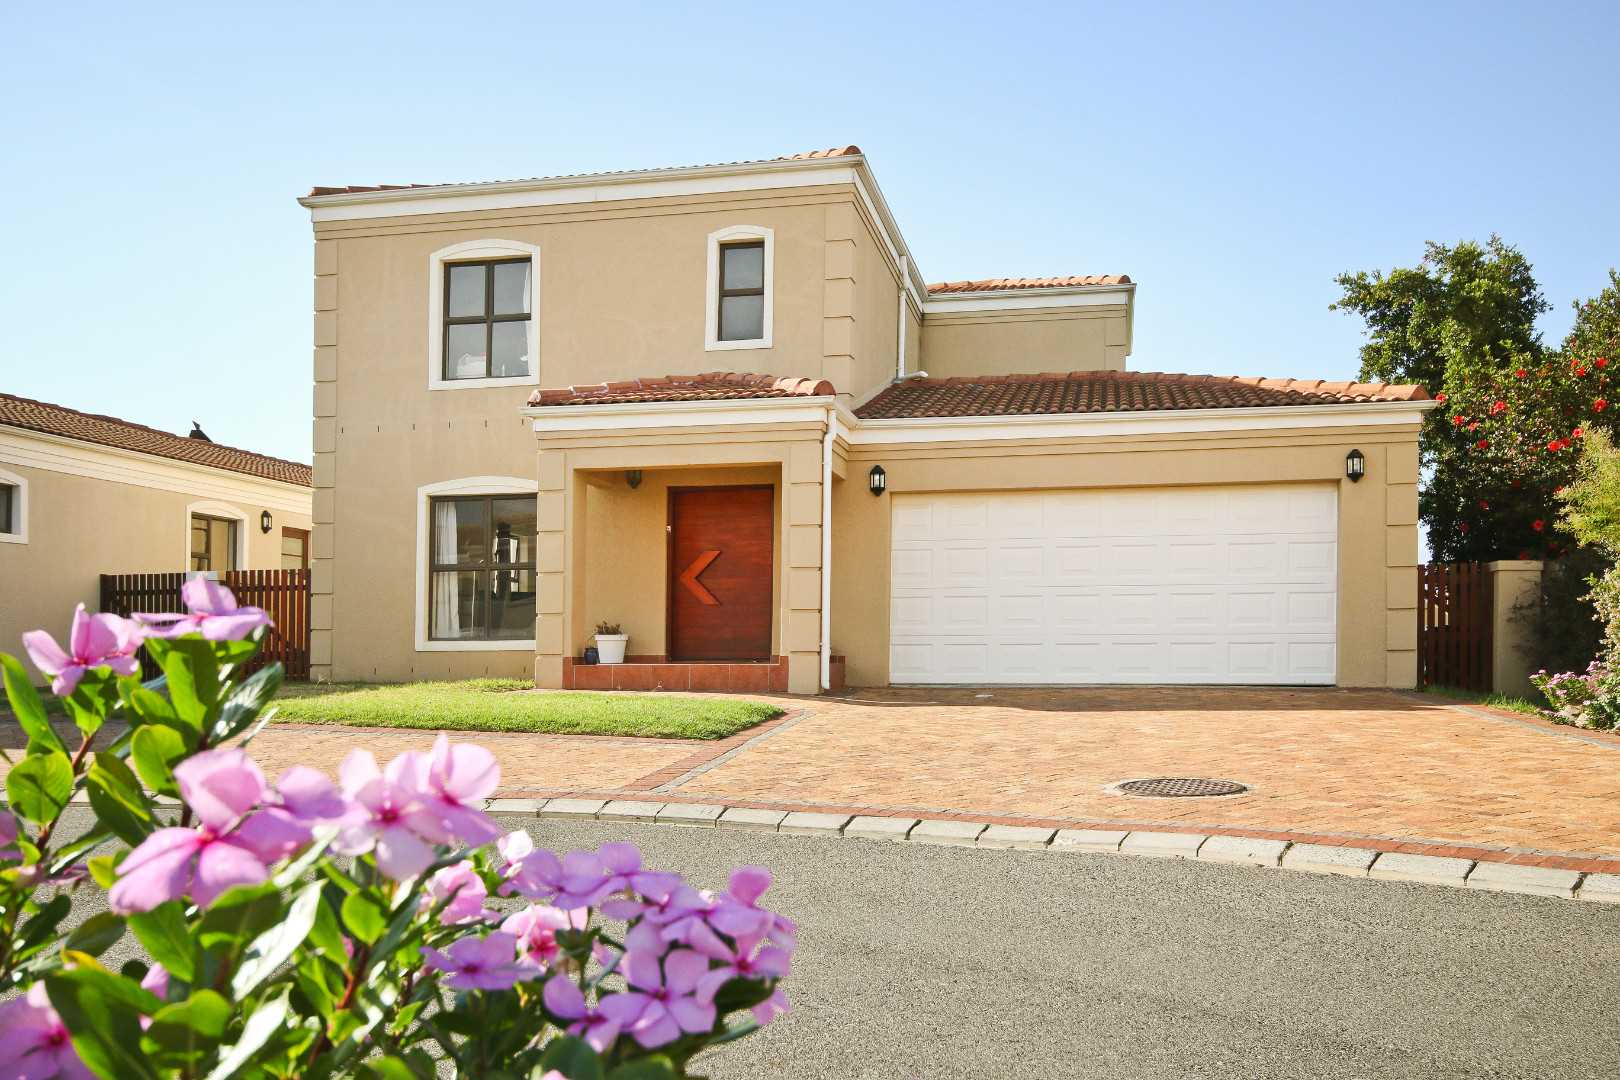 We have a new release on the market in Somerset West!